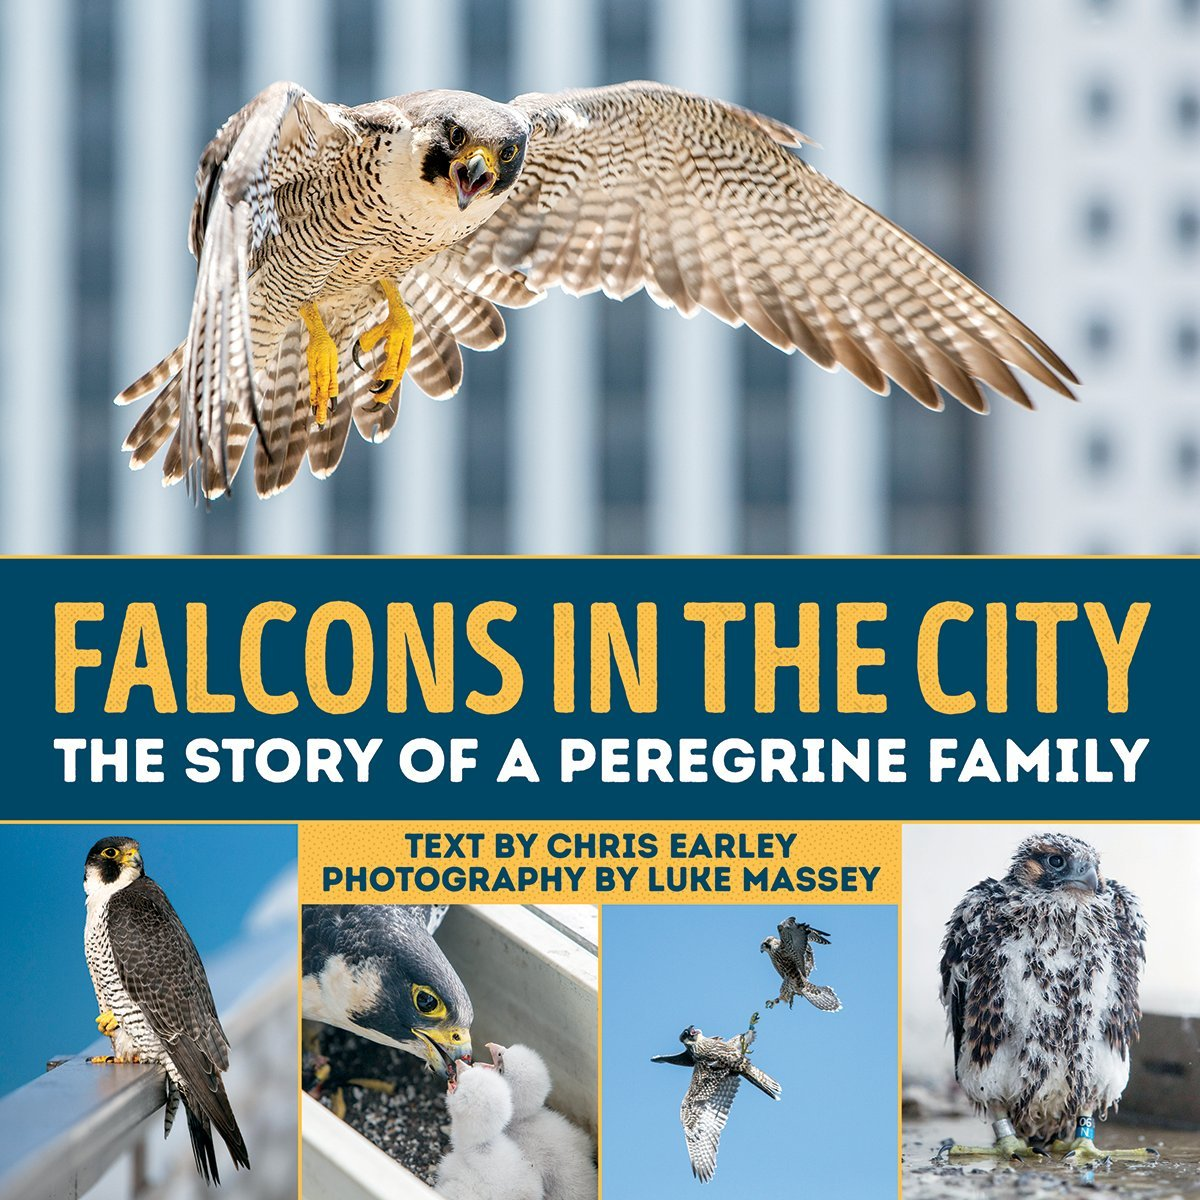 Falcons in the City The Story of a Peregine Family